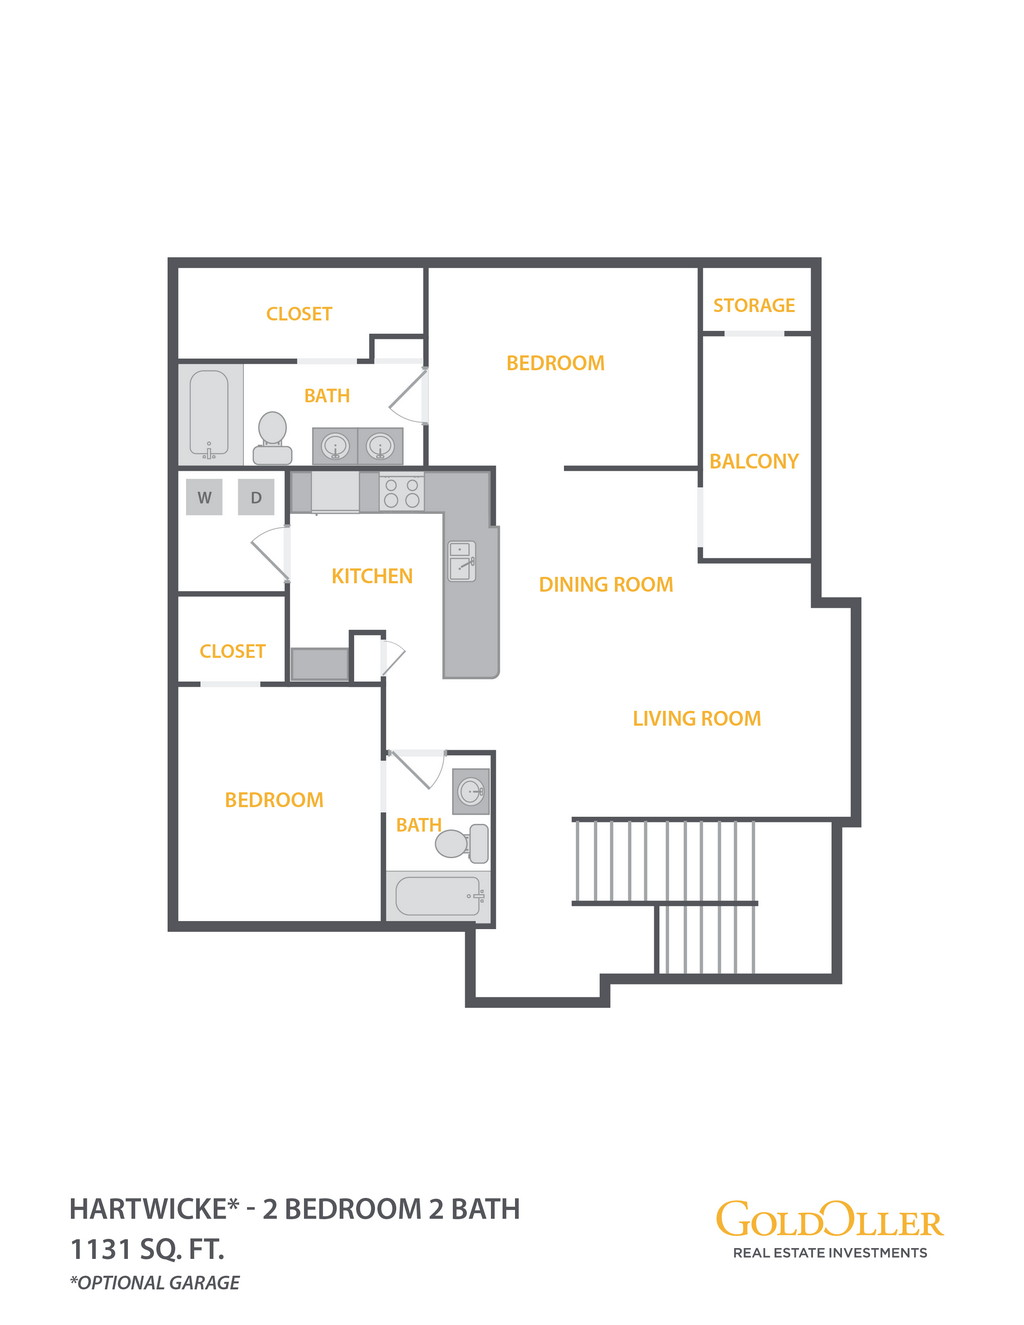 Luxury Apartment Floor Plans In Beachwood Ohio